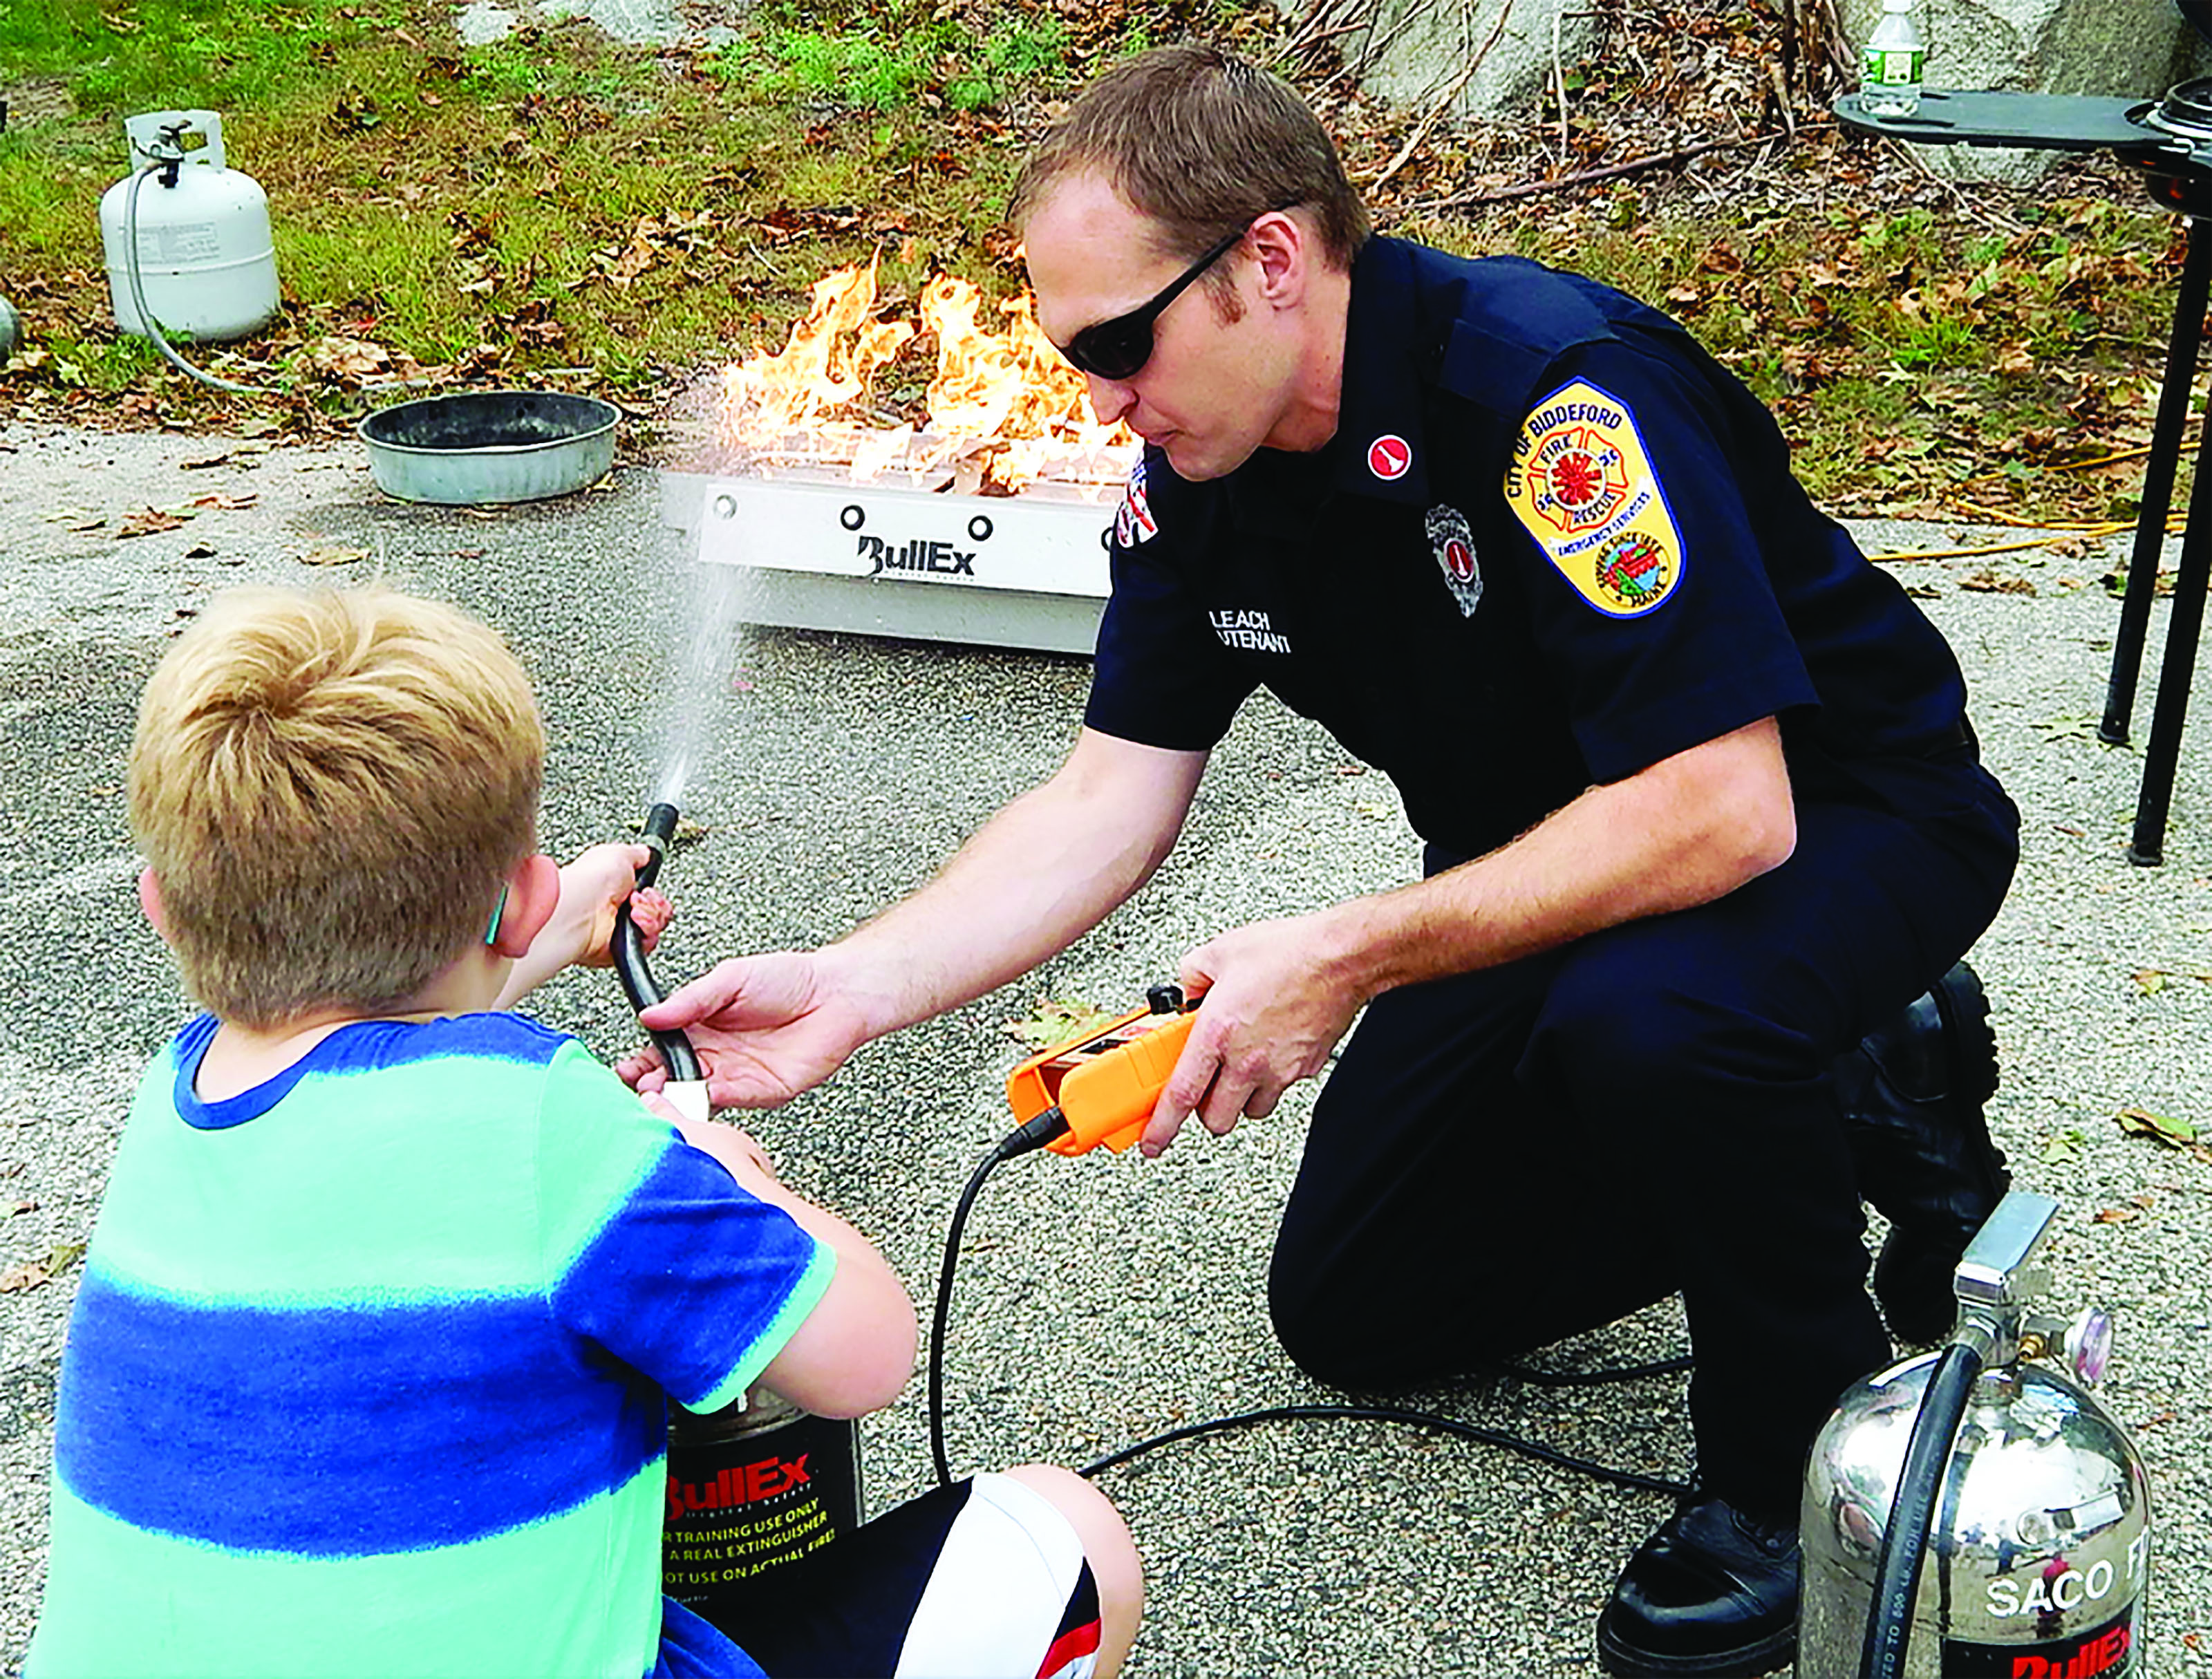 Biddeford Fire Department Lt. Matthew Leach shows a student how to properly use a fire extinguisher during the fire department's annual open house held at the Biddeford Fire Station on Saturday. ED PIERCE/Journal Tribune